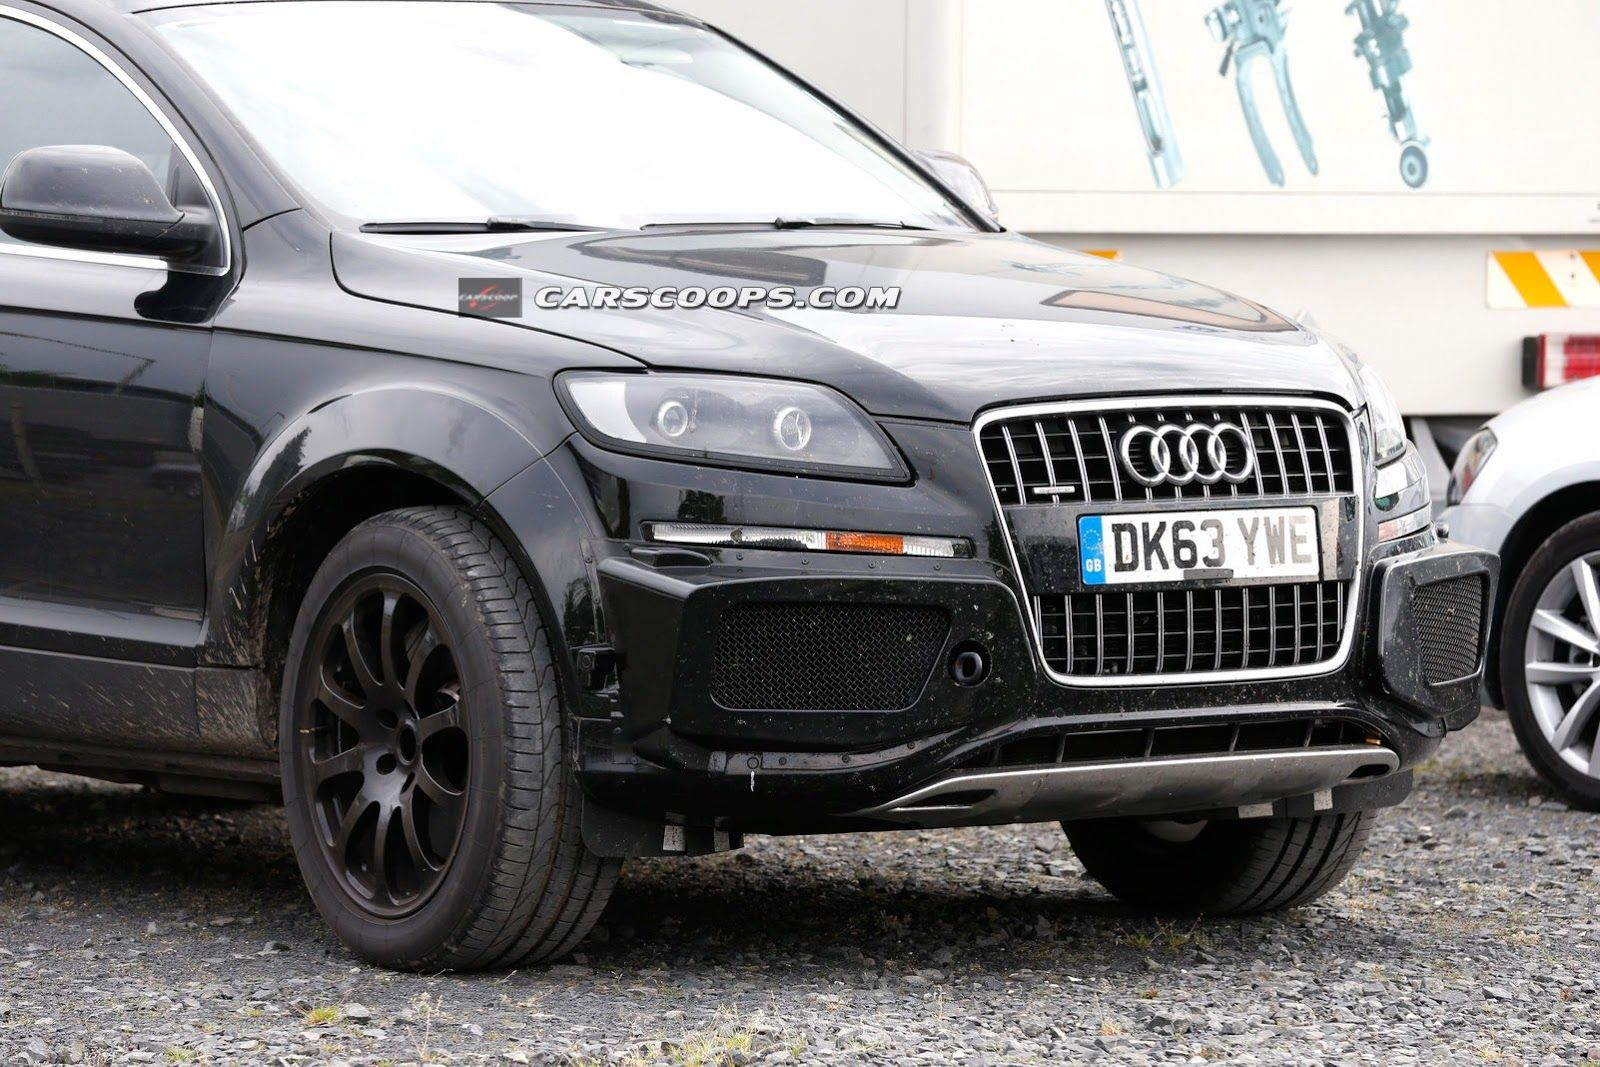 Bentleys upcoming suv spied disguised as a w12 poweredaudi q7